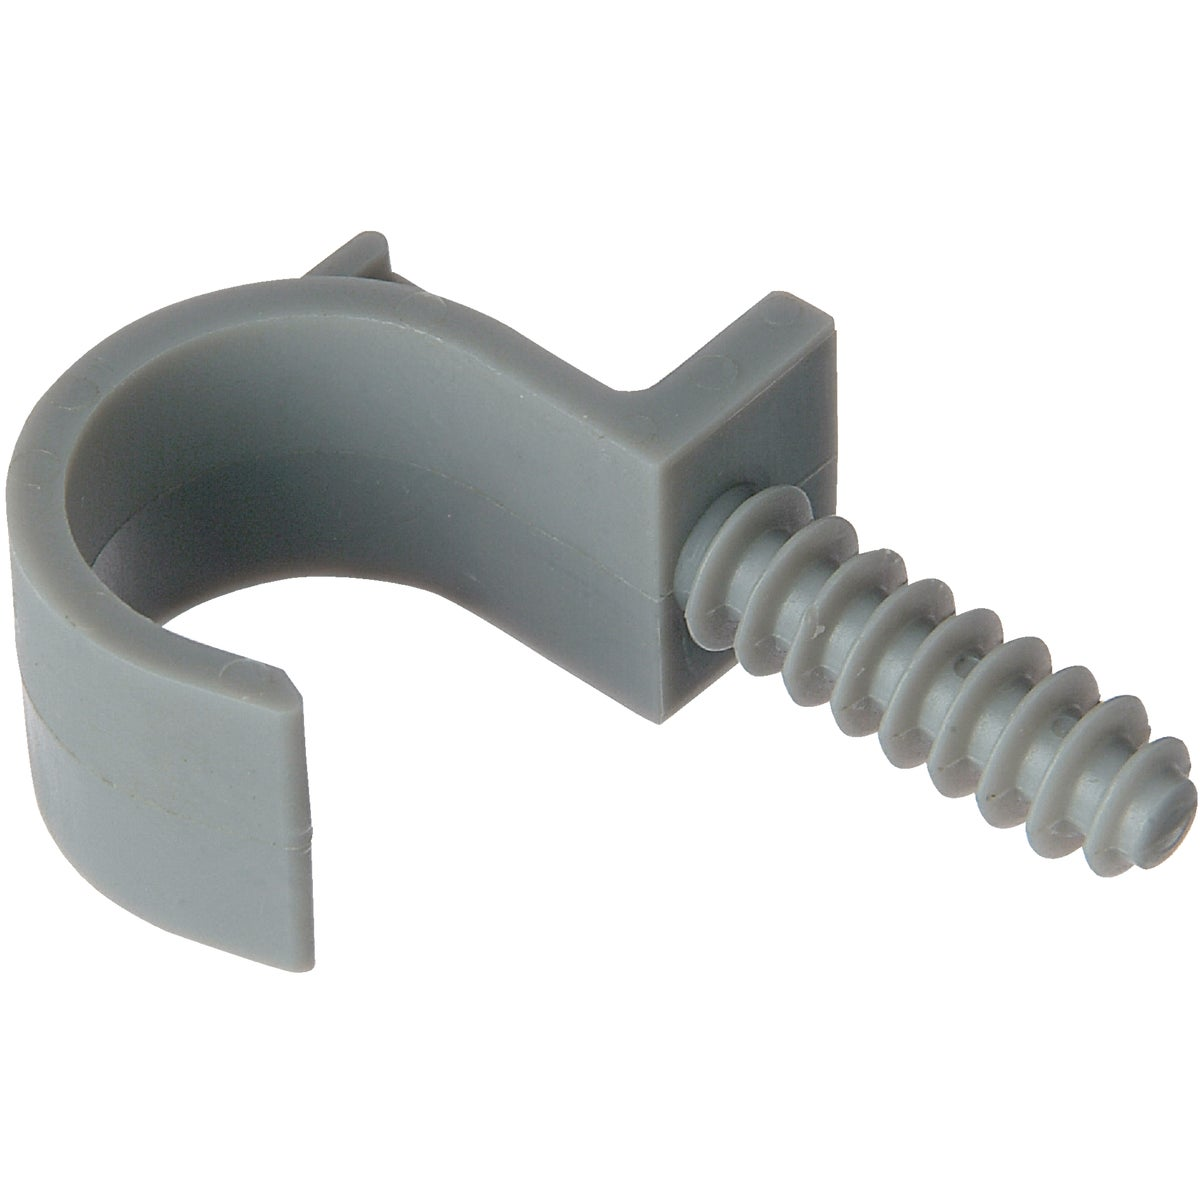 "3/4"" MSNRY CONDUIT CLAMP"